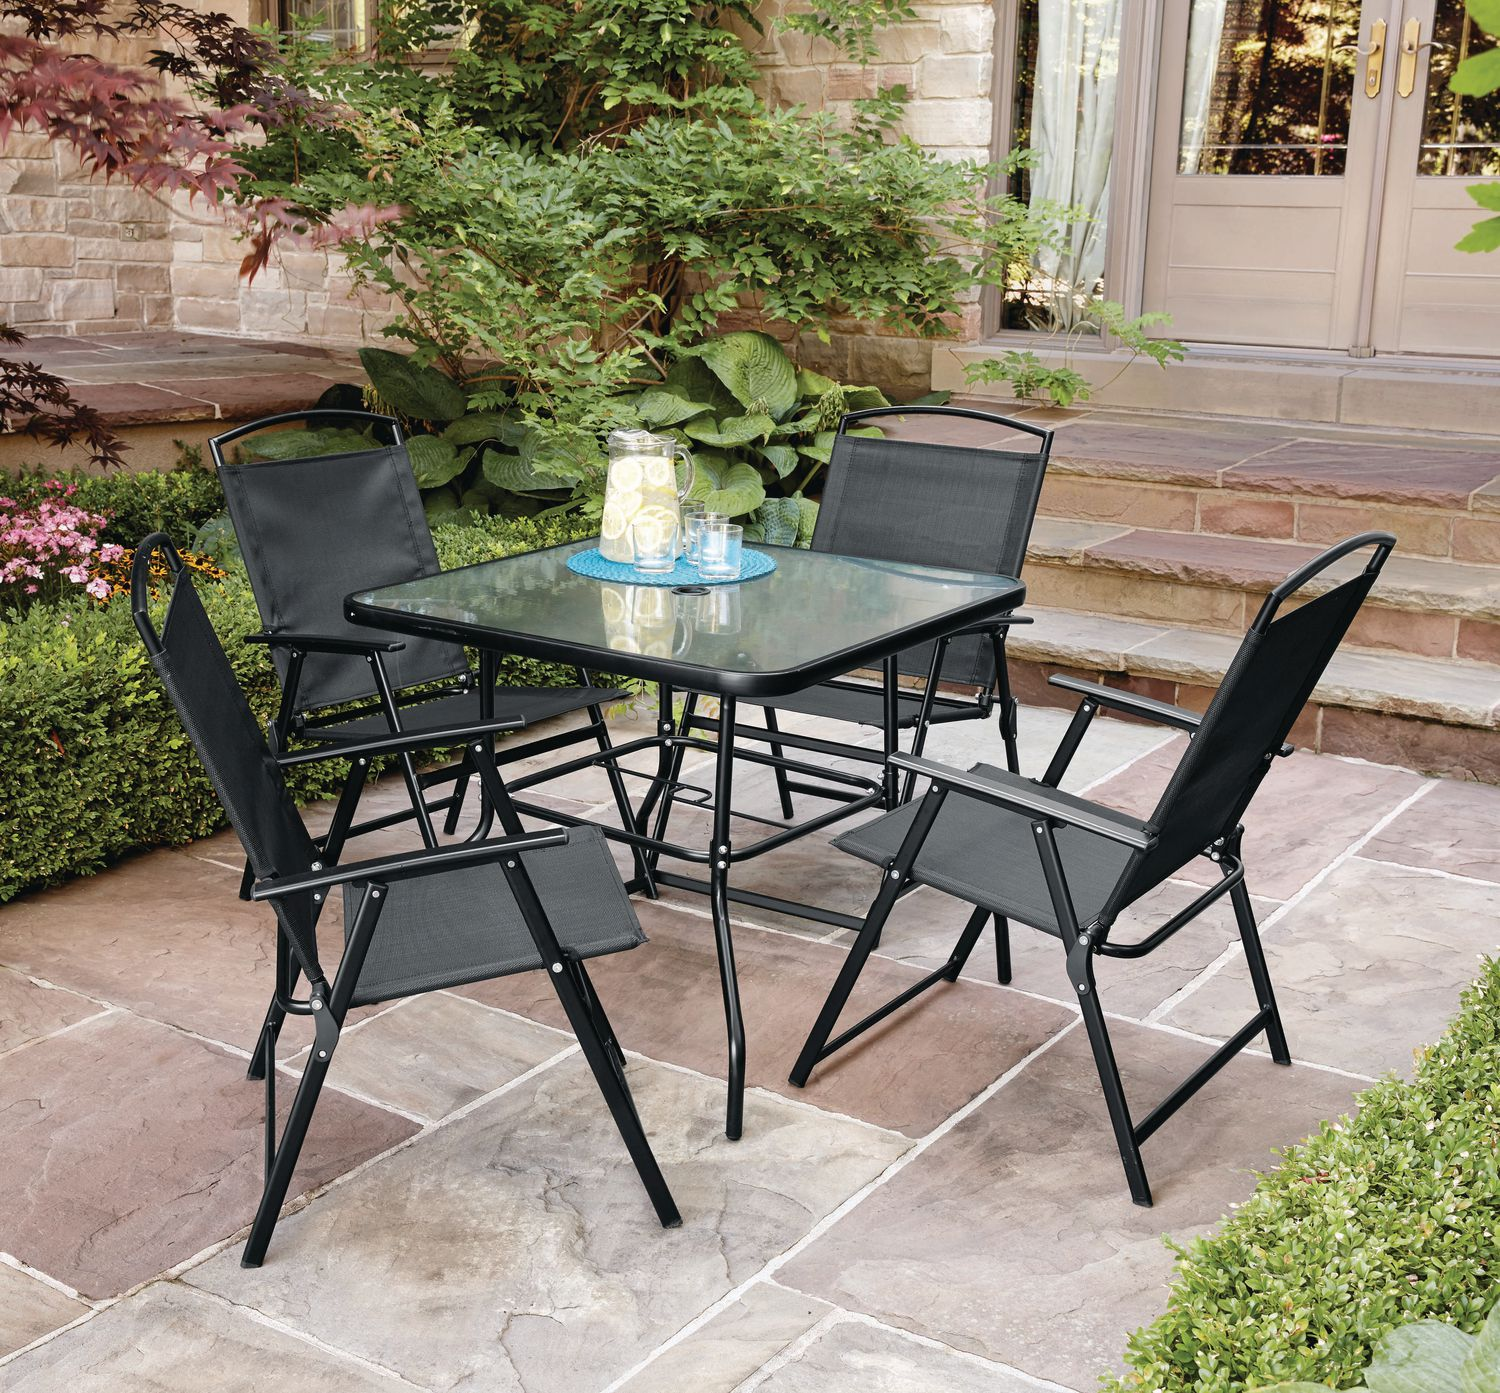 Walmart patio furniture set home design ideas and pictures for Patio furniture table set